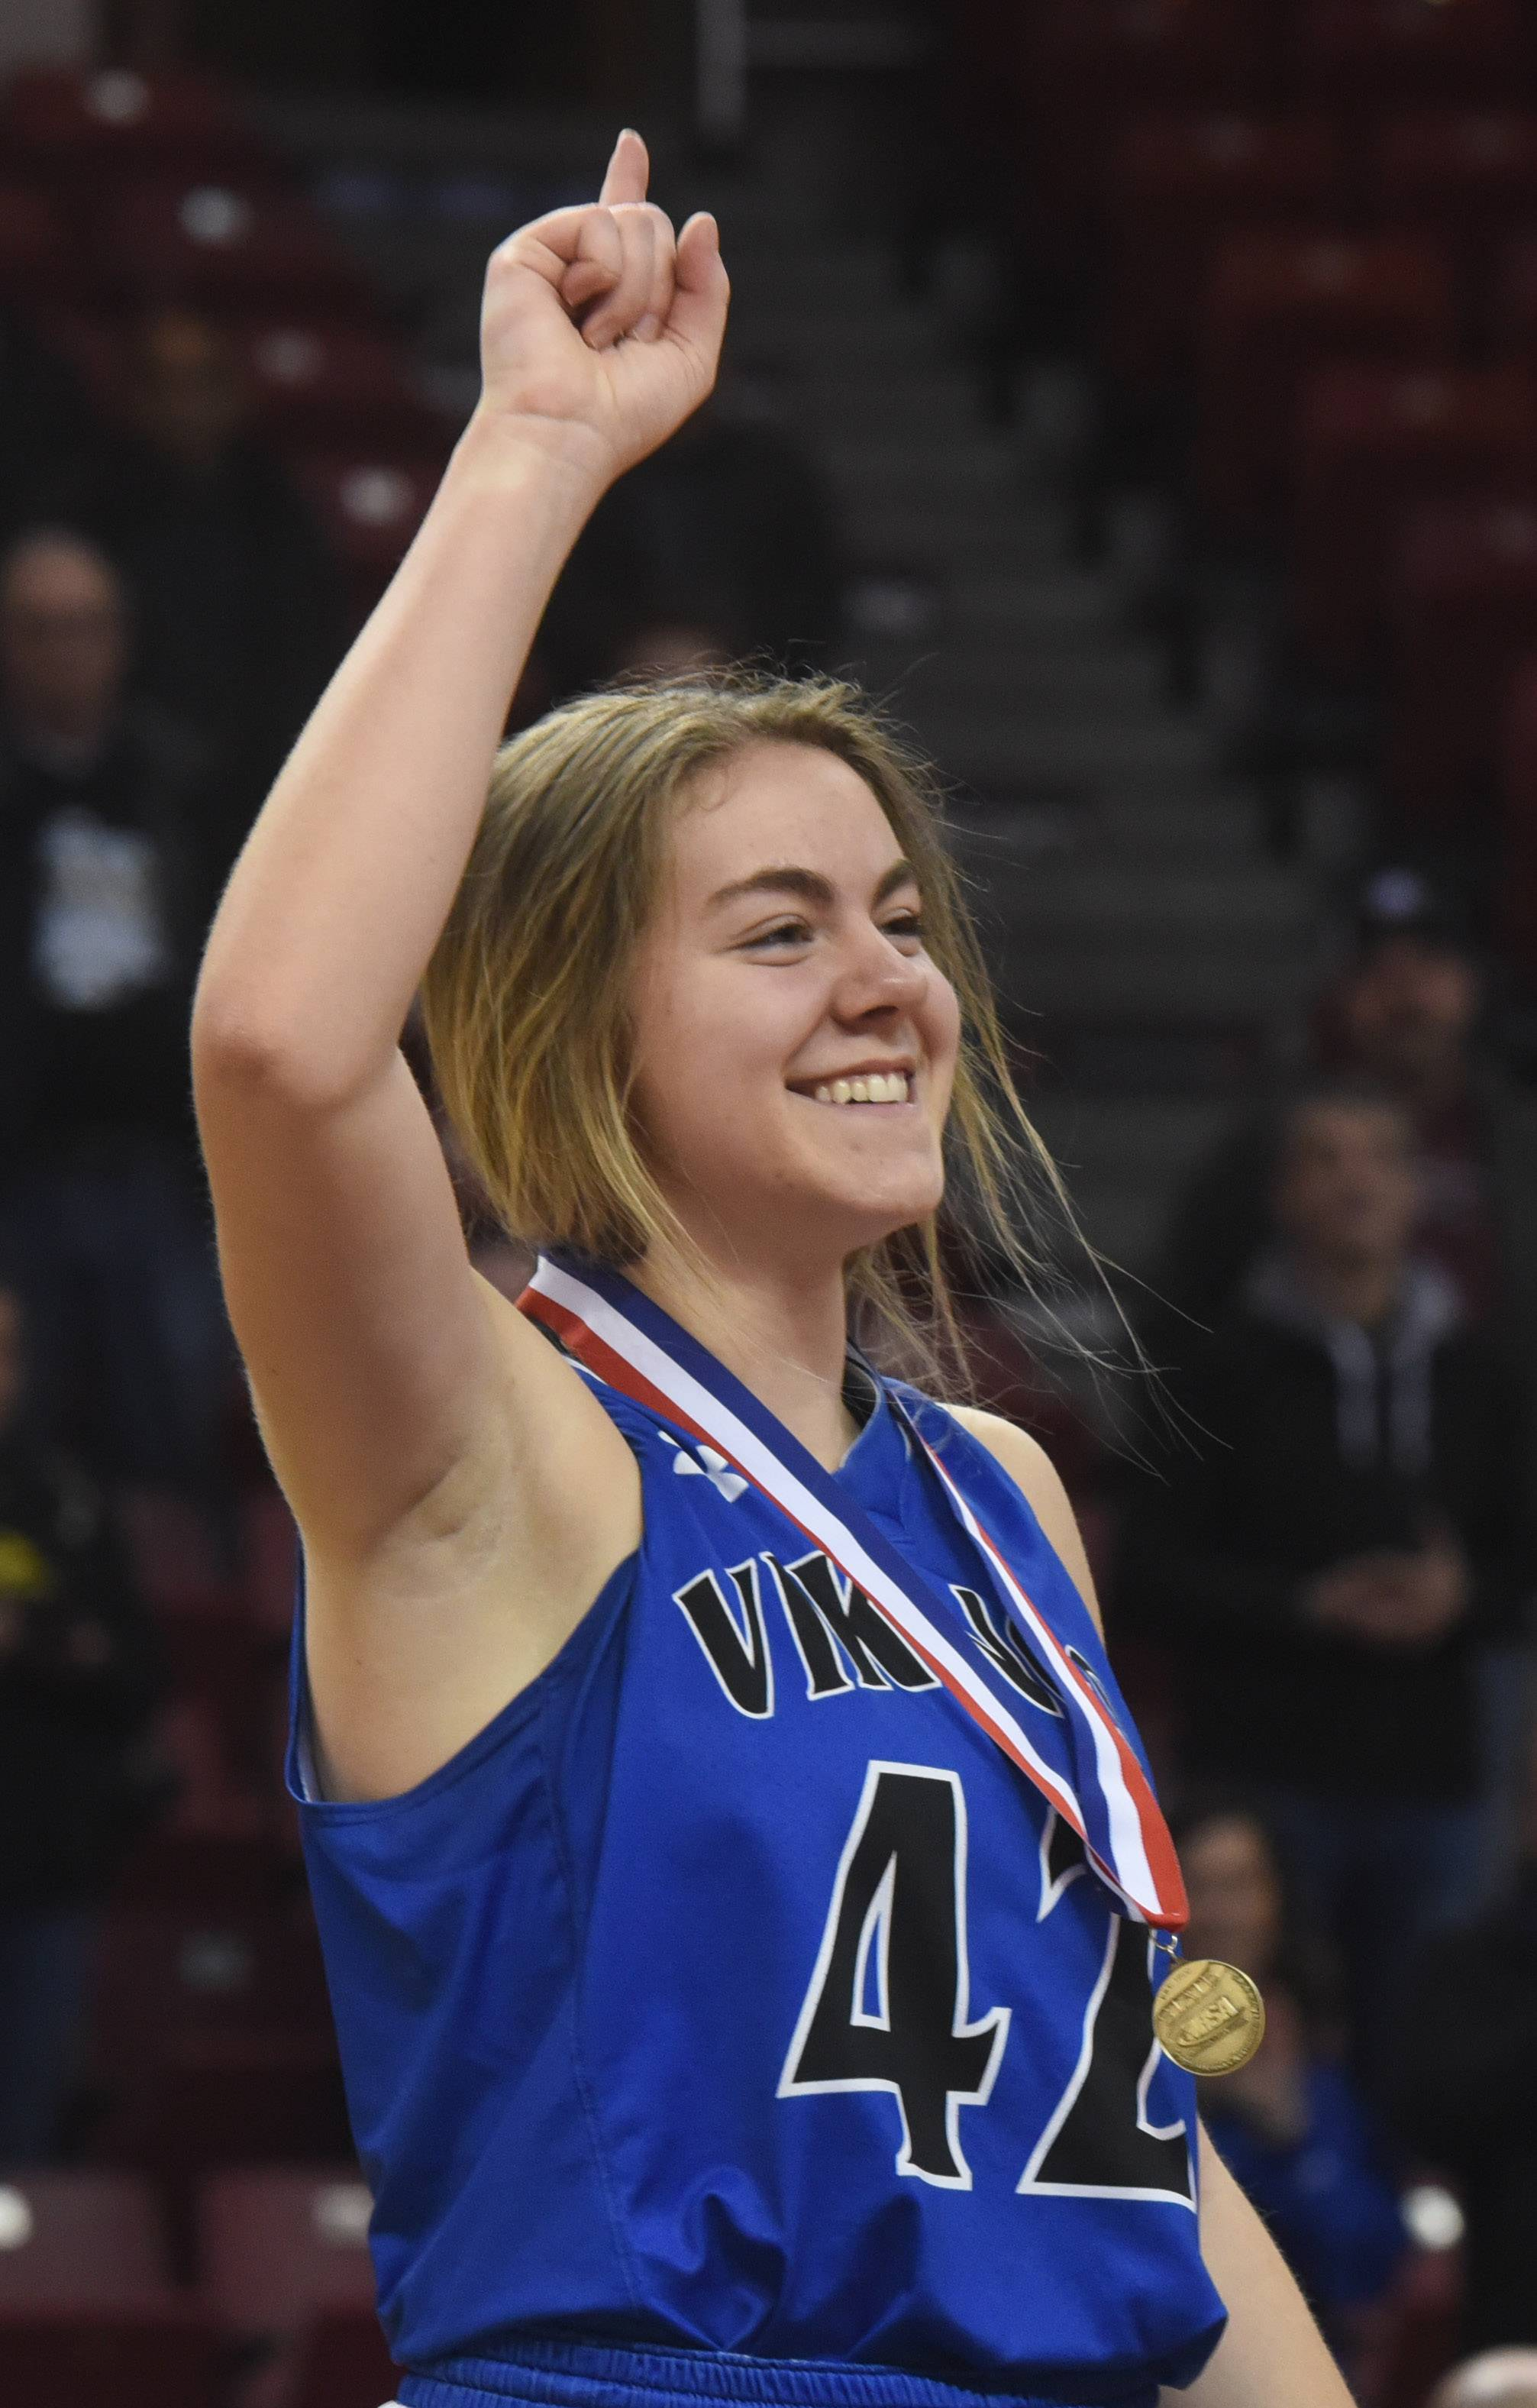 Geneva's Stephanie Hart receives her state championship medal following the girls basketball Class 4A title game against Montini at Redbird Arena in Normal Saturday.